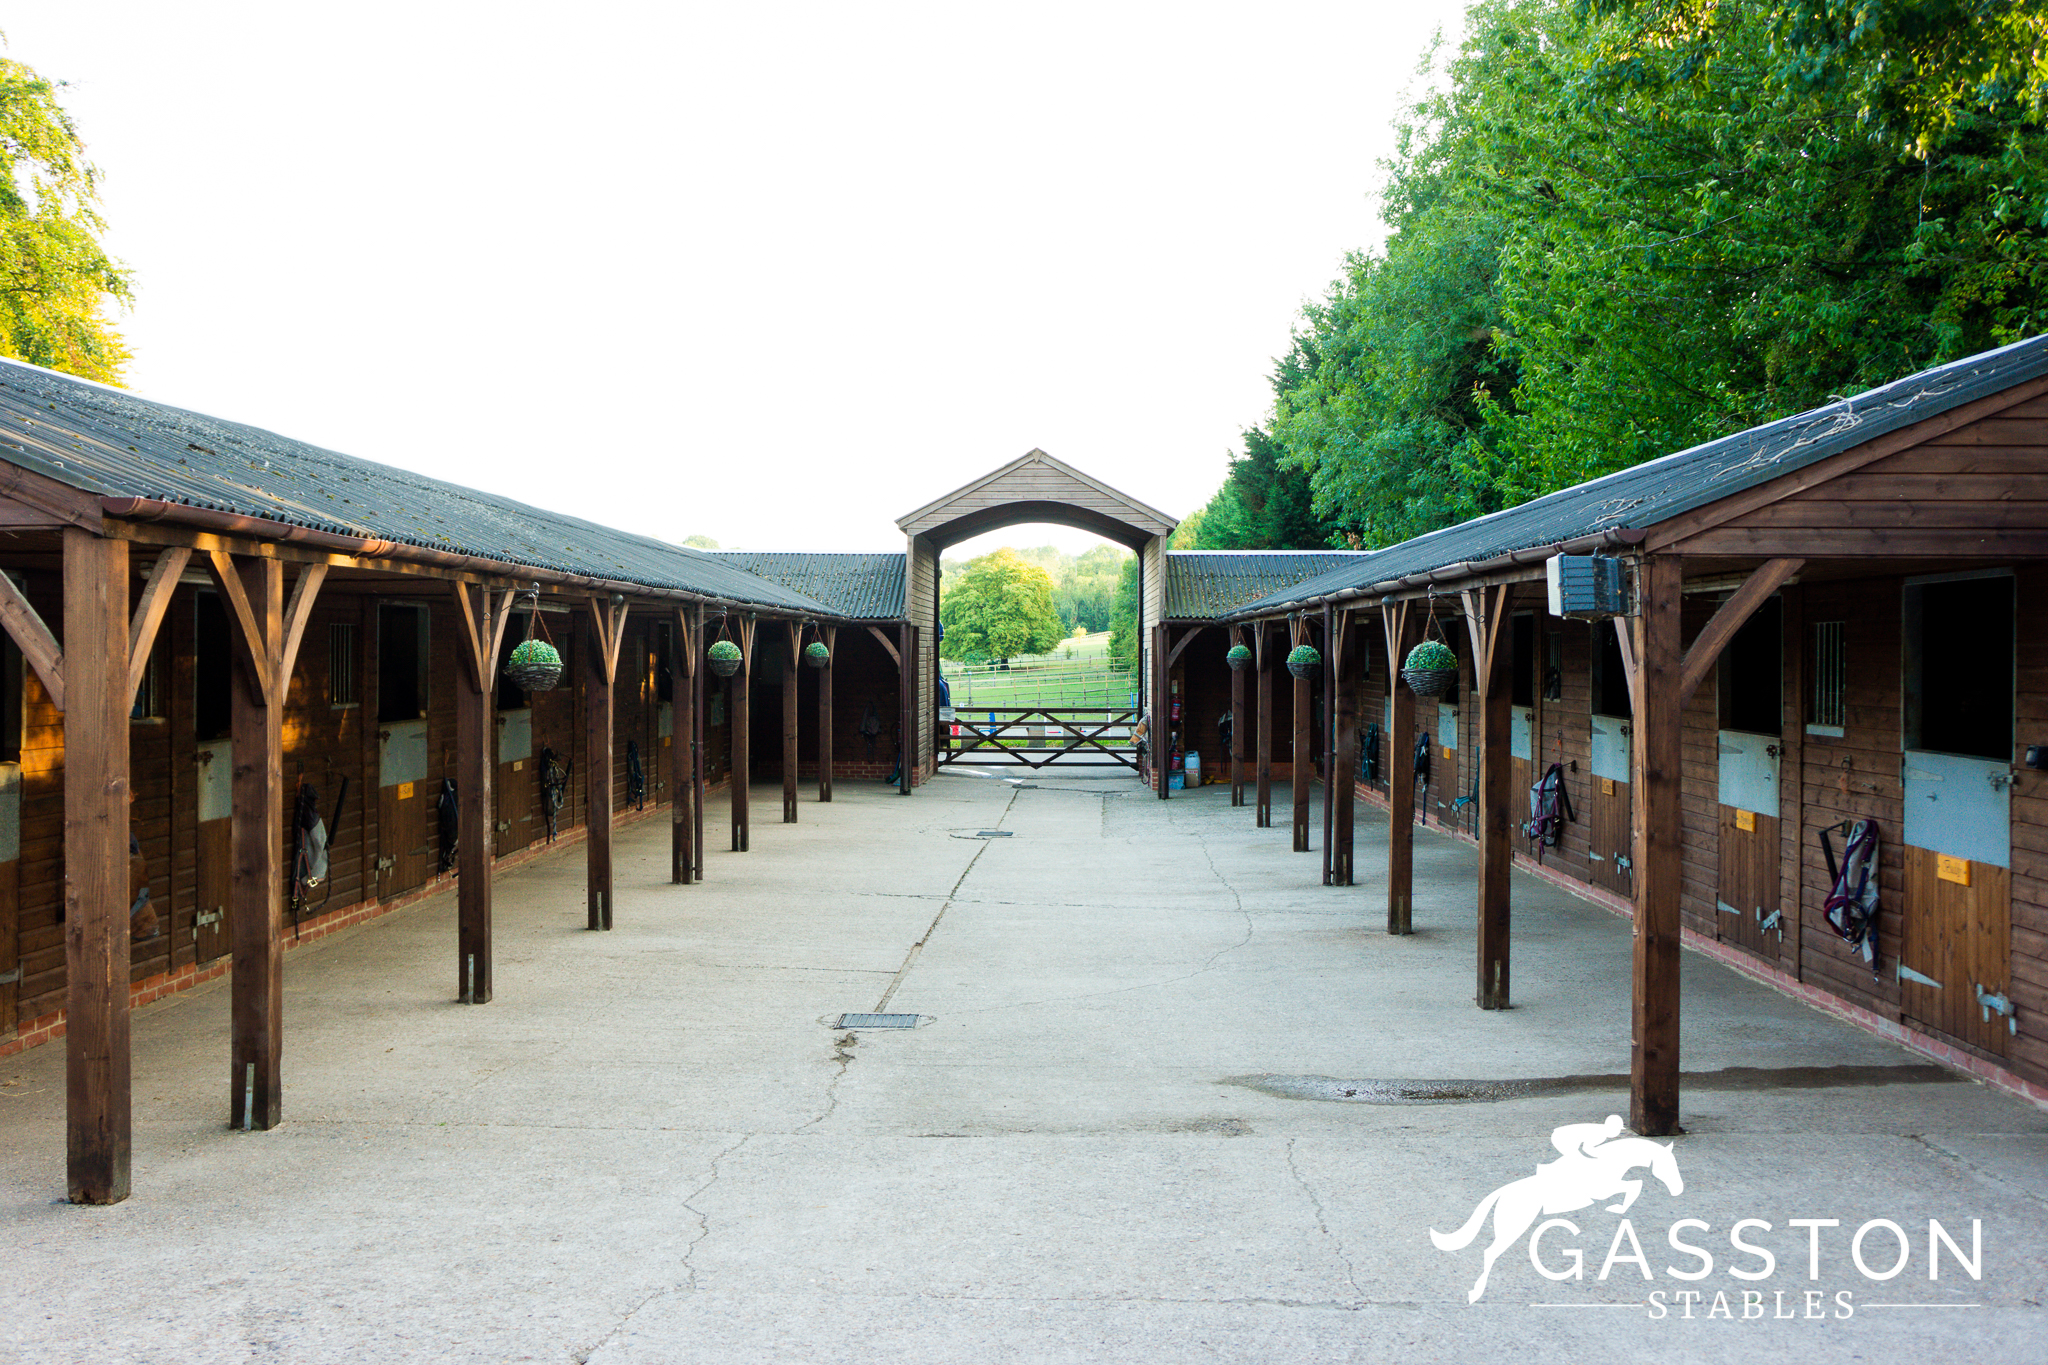 North Lodge Stables